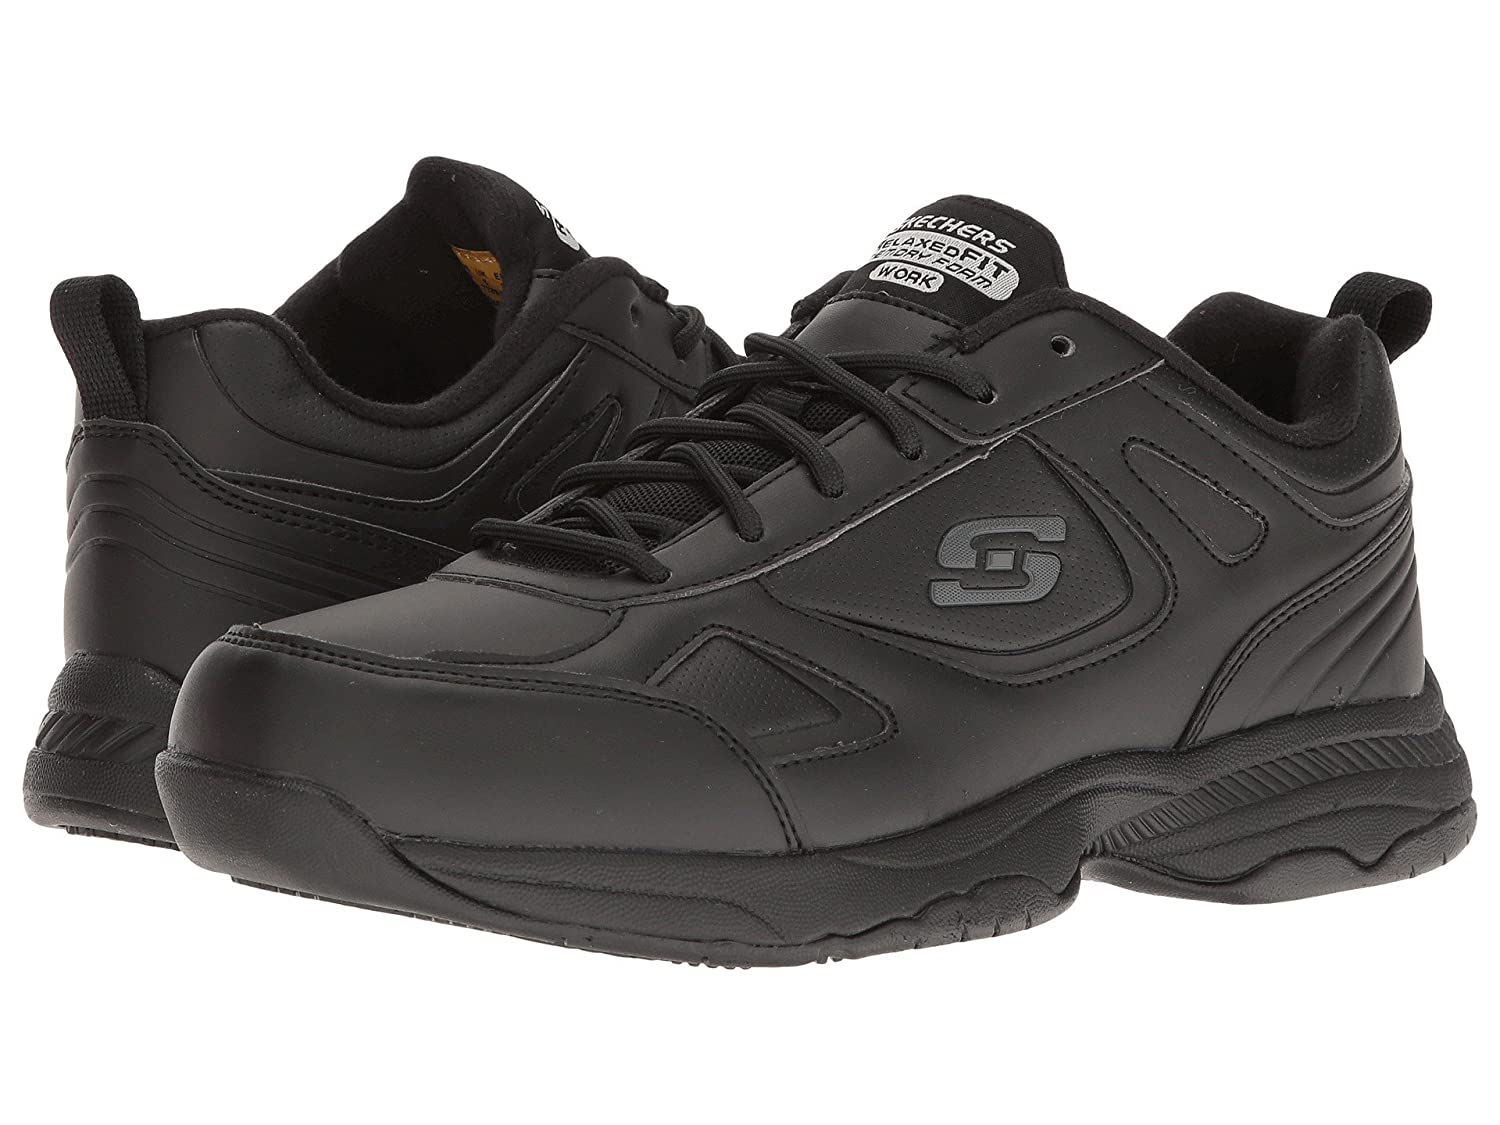 (スケッチャーズ) SKECHERS レディースワークシューズナースシューズ靴 Dighton Bricelyn [並行輸入品] B07FRY5WLB 5.5 (22.5cm) C Wide|Black Synthetic/Leather Black Synthetic/Leather 5.5 (22.5cm) C Wide